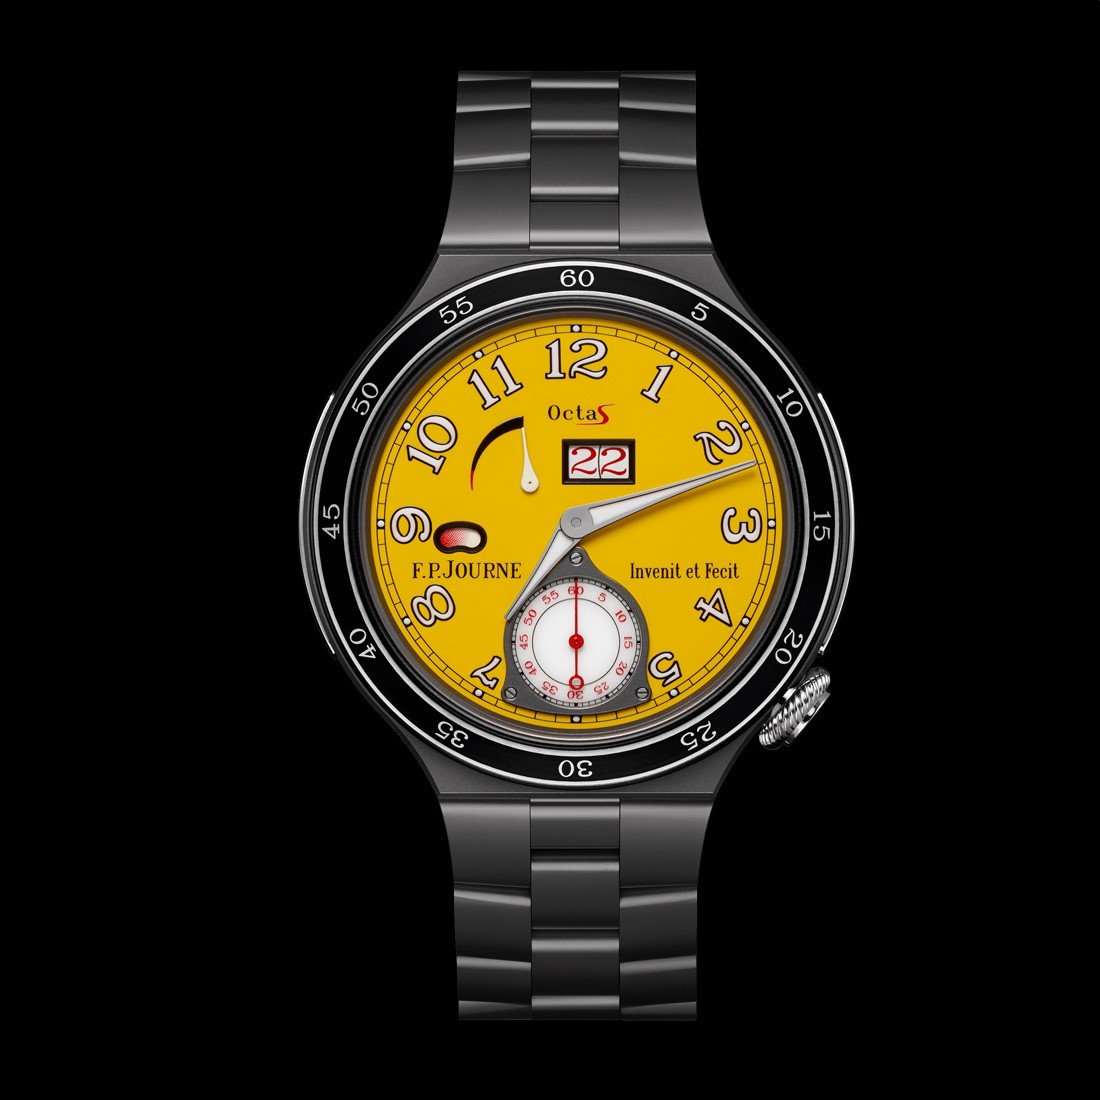 F.P.Journe octa sport automatique titanium yellow dial